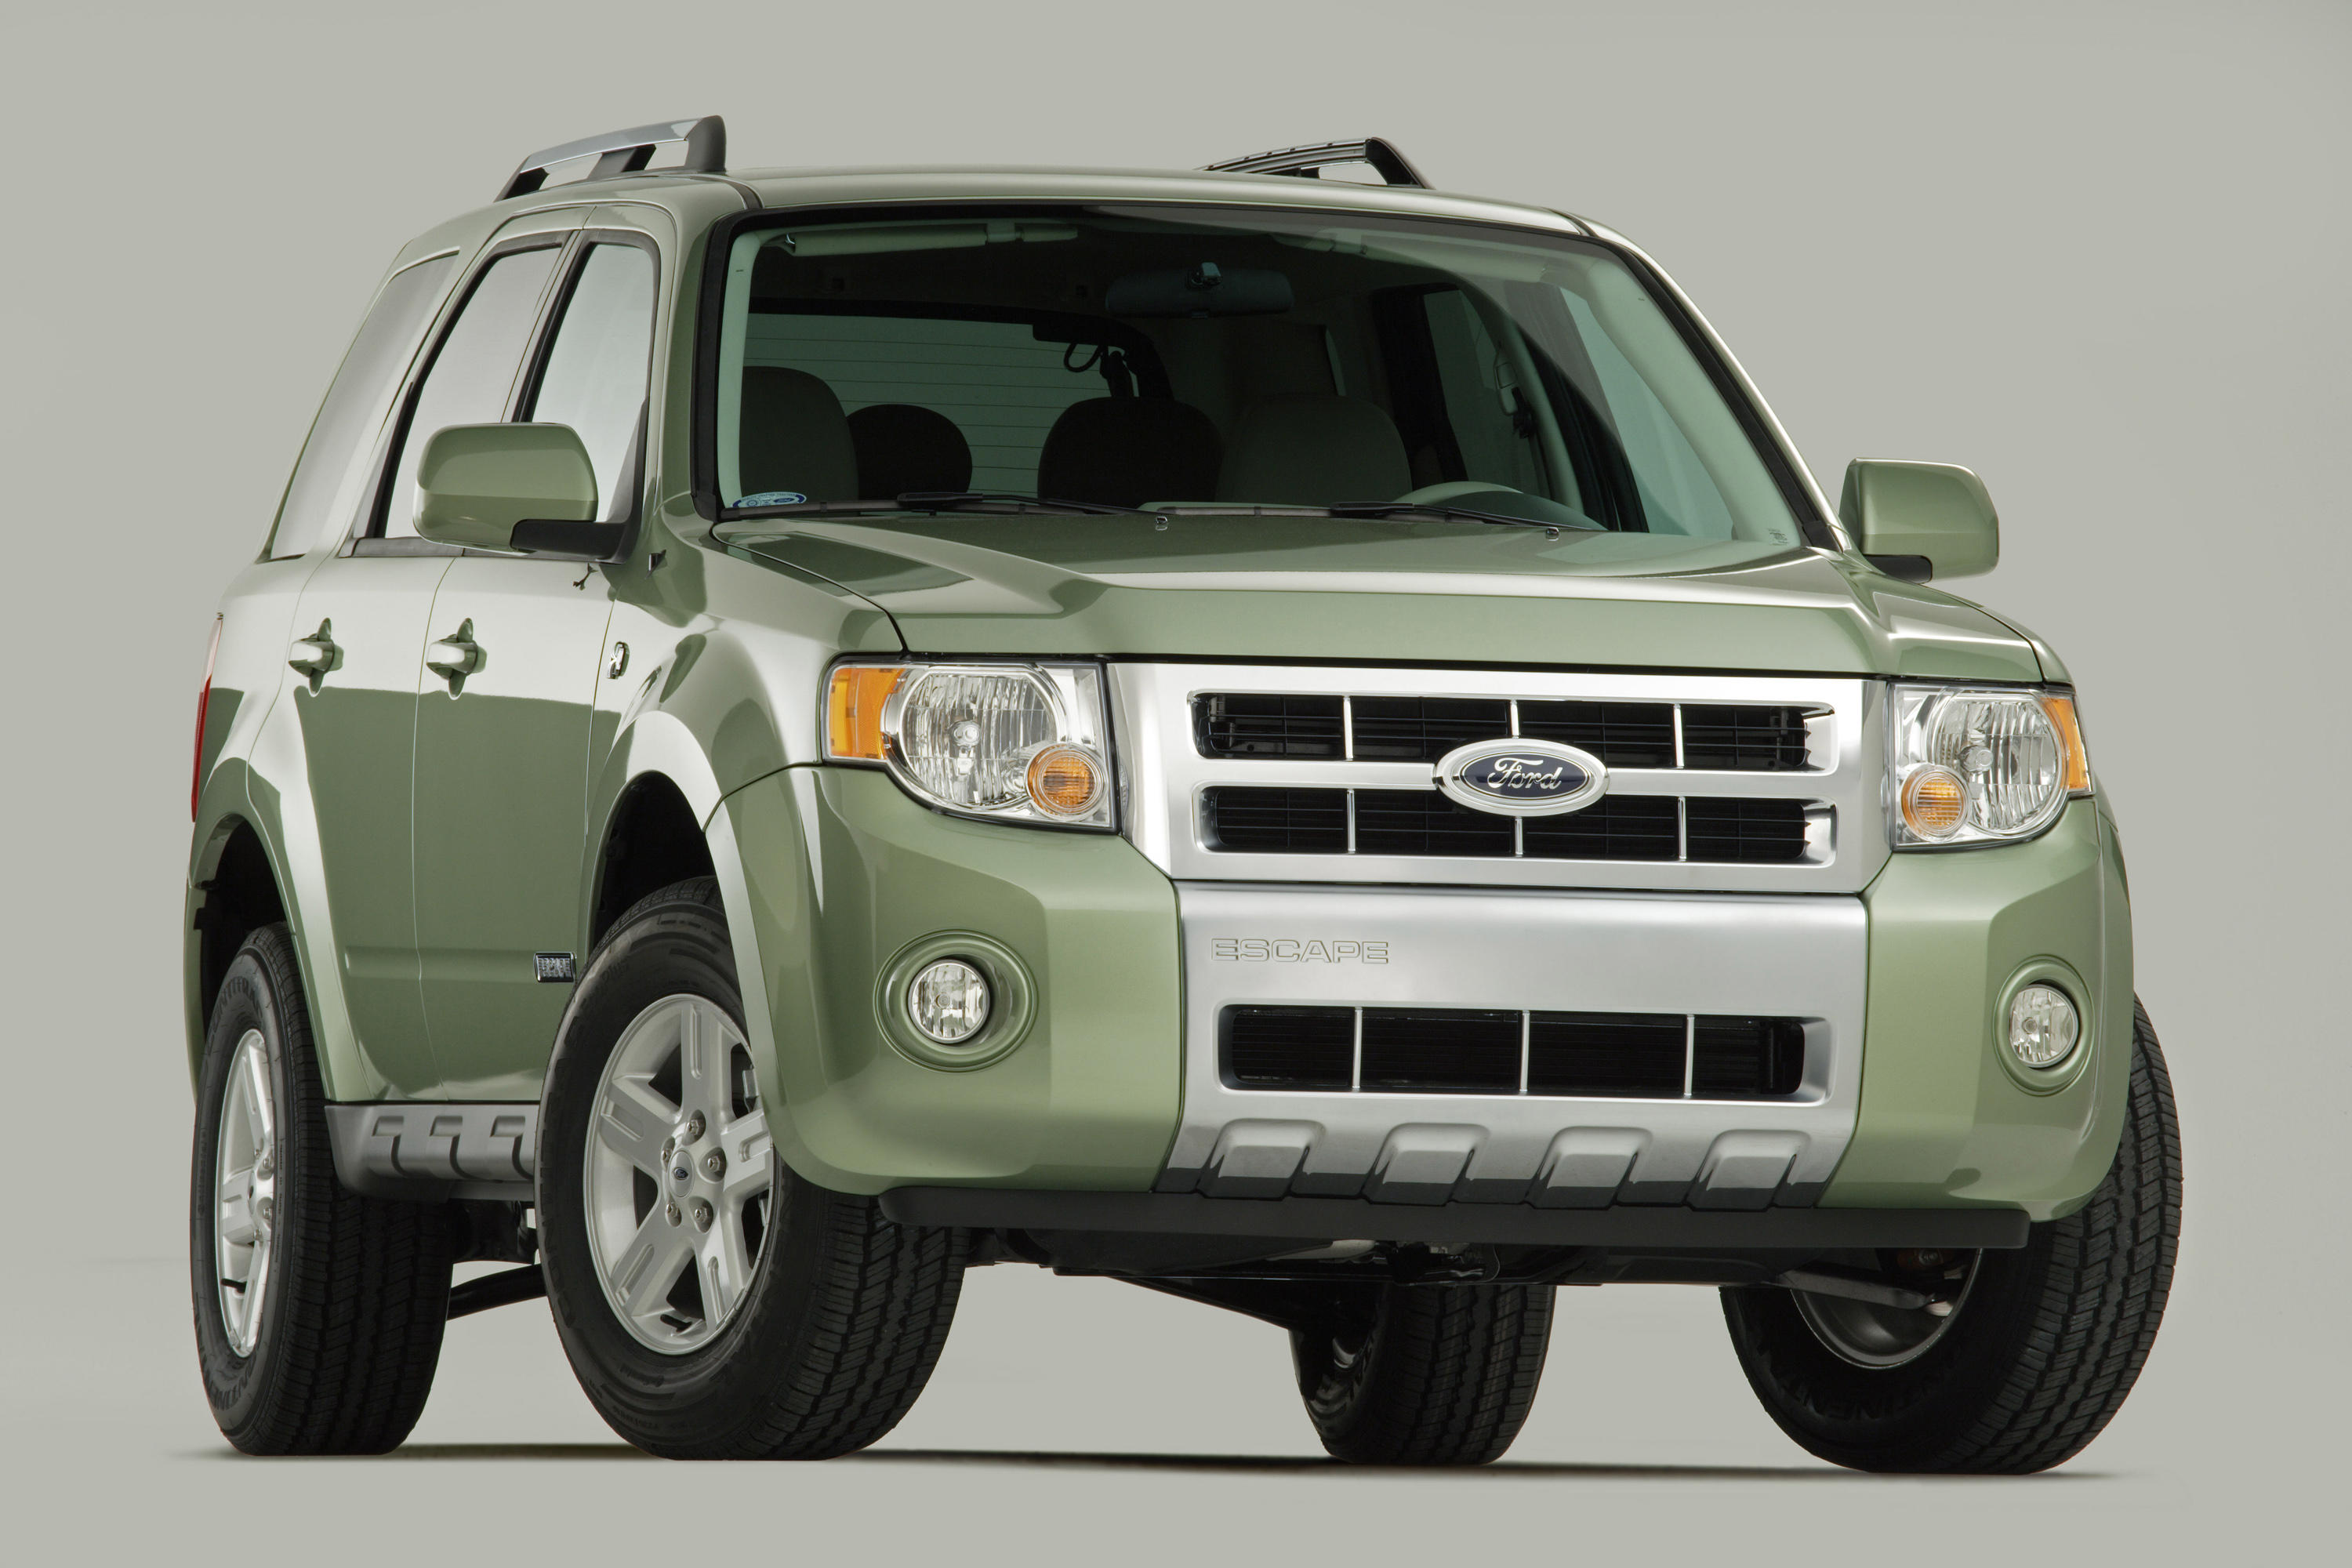 2008-ford-escape-hybrid-exterior-8